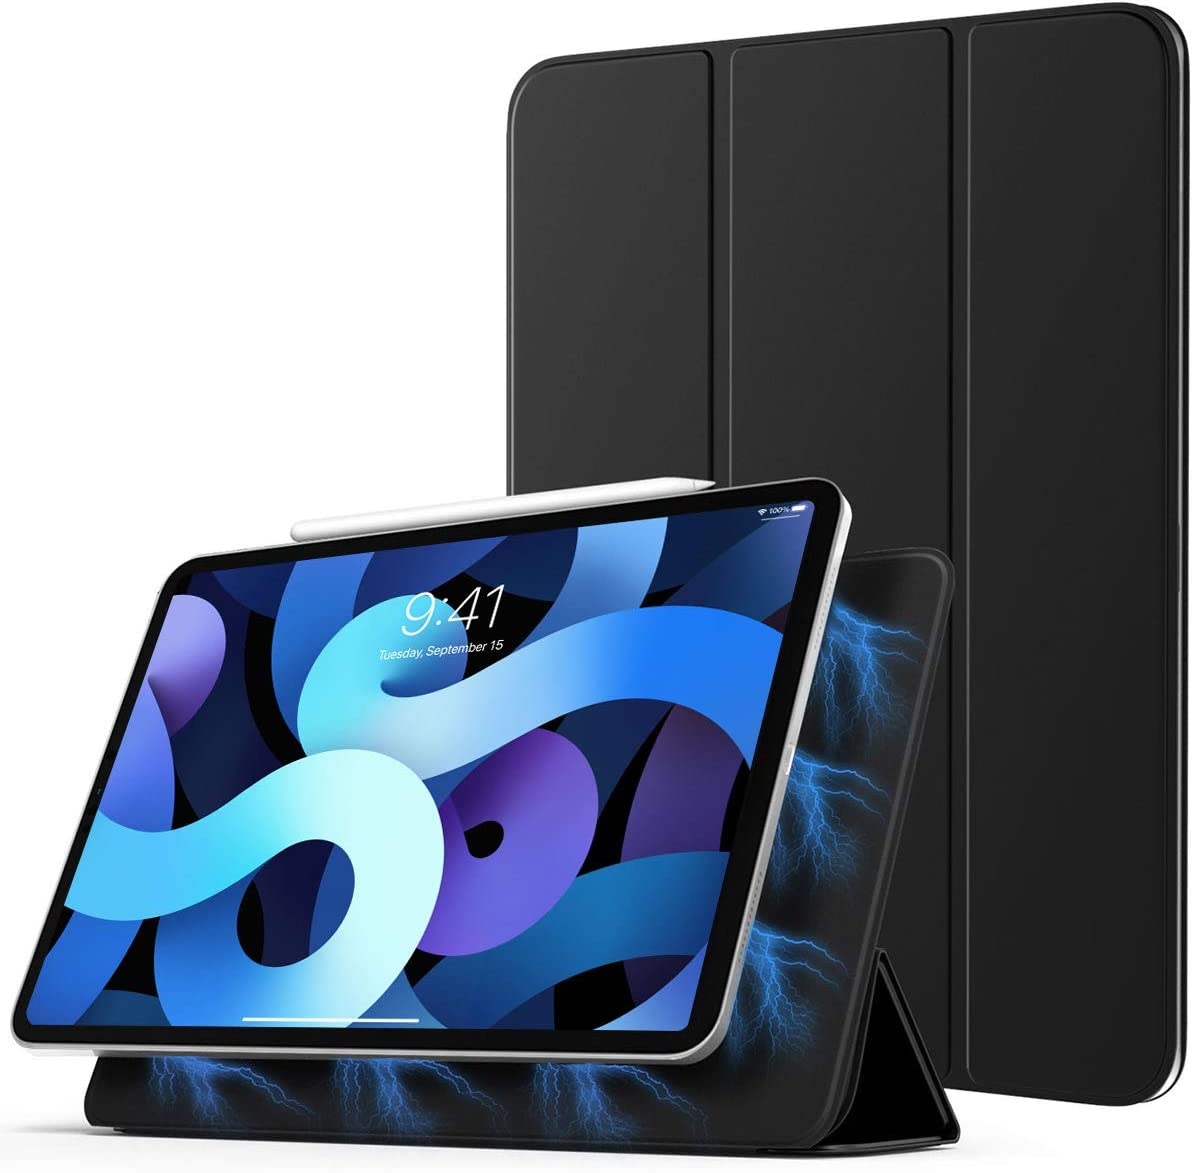 """TiMOVO Case for New iPad Air 4th Generation, iPad Air 4 Case (10.9-inch, 2020)/iPad Pro 11"""" 2018, [Support Apple Pencil Pair &Charging] Strong Magnetic Trifold Stand Case & Auto Sleep/Wake - Black"""